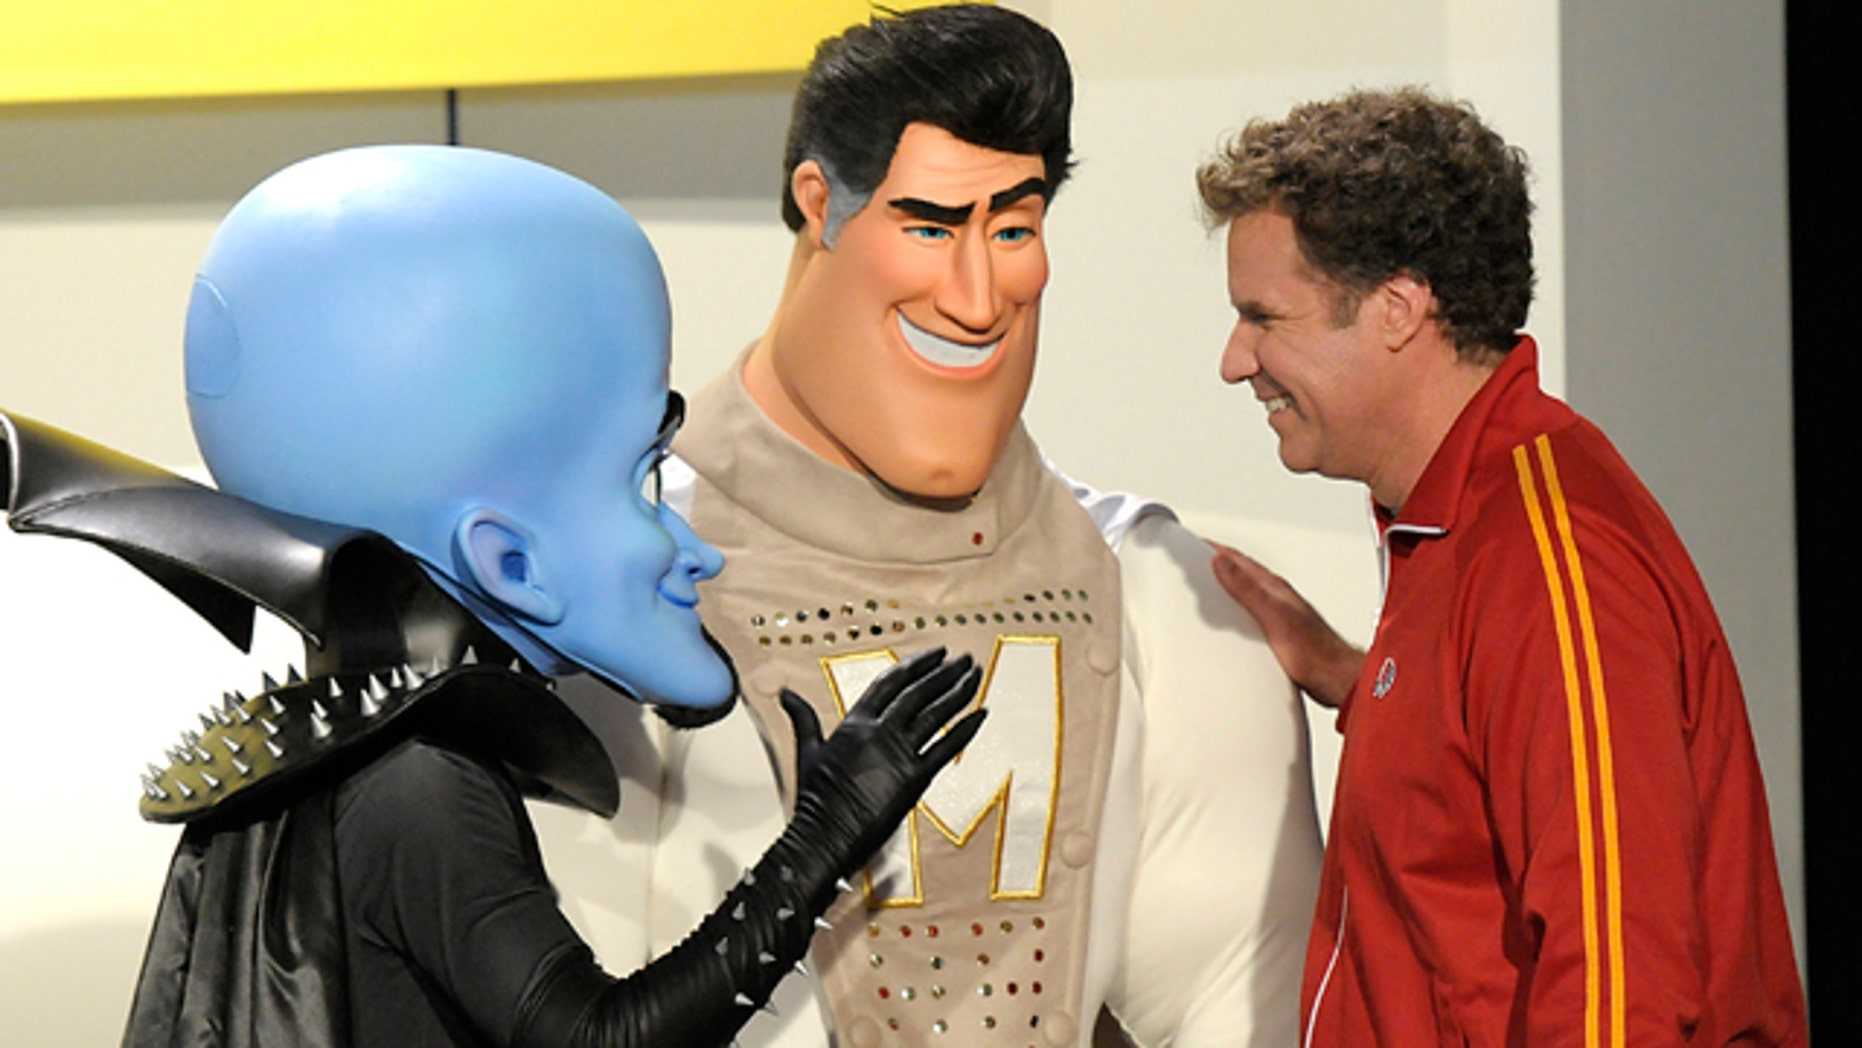 """Oct. 30: Actor Will Ferrell poses with costumed characters at the Los Angeles premiere of the animated feature film """"Megamind."""""""